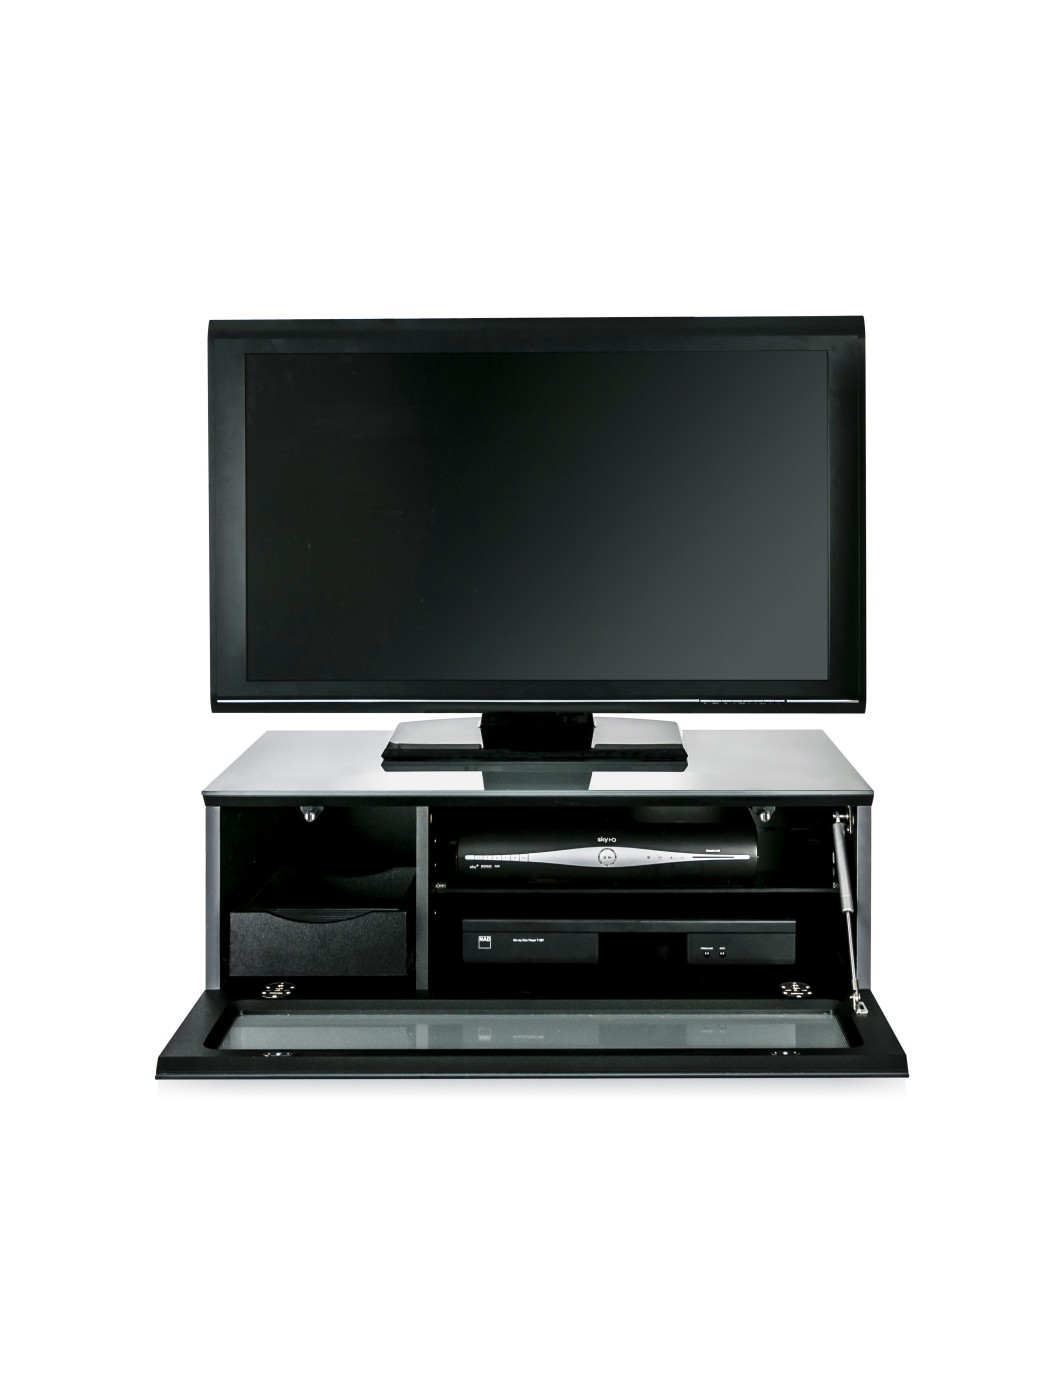 TV Stand Element Modular EMTMOD850-GRY Grey TV Stand with Glass Top